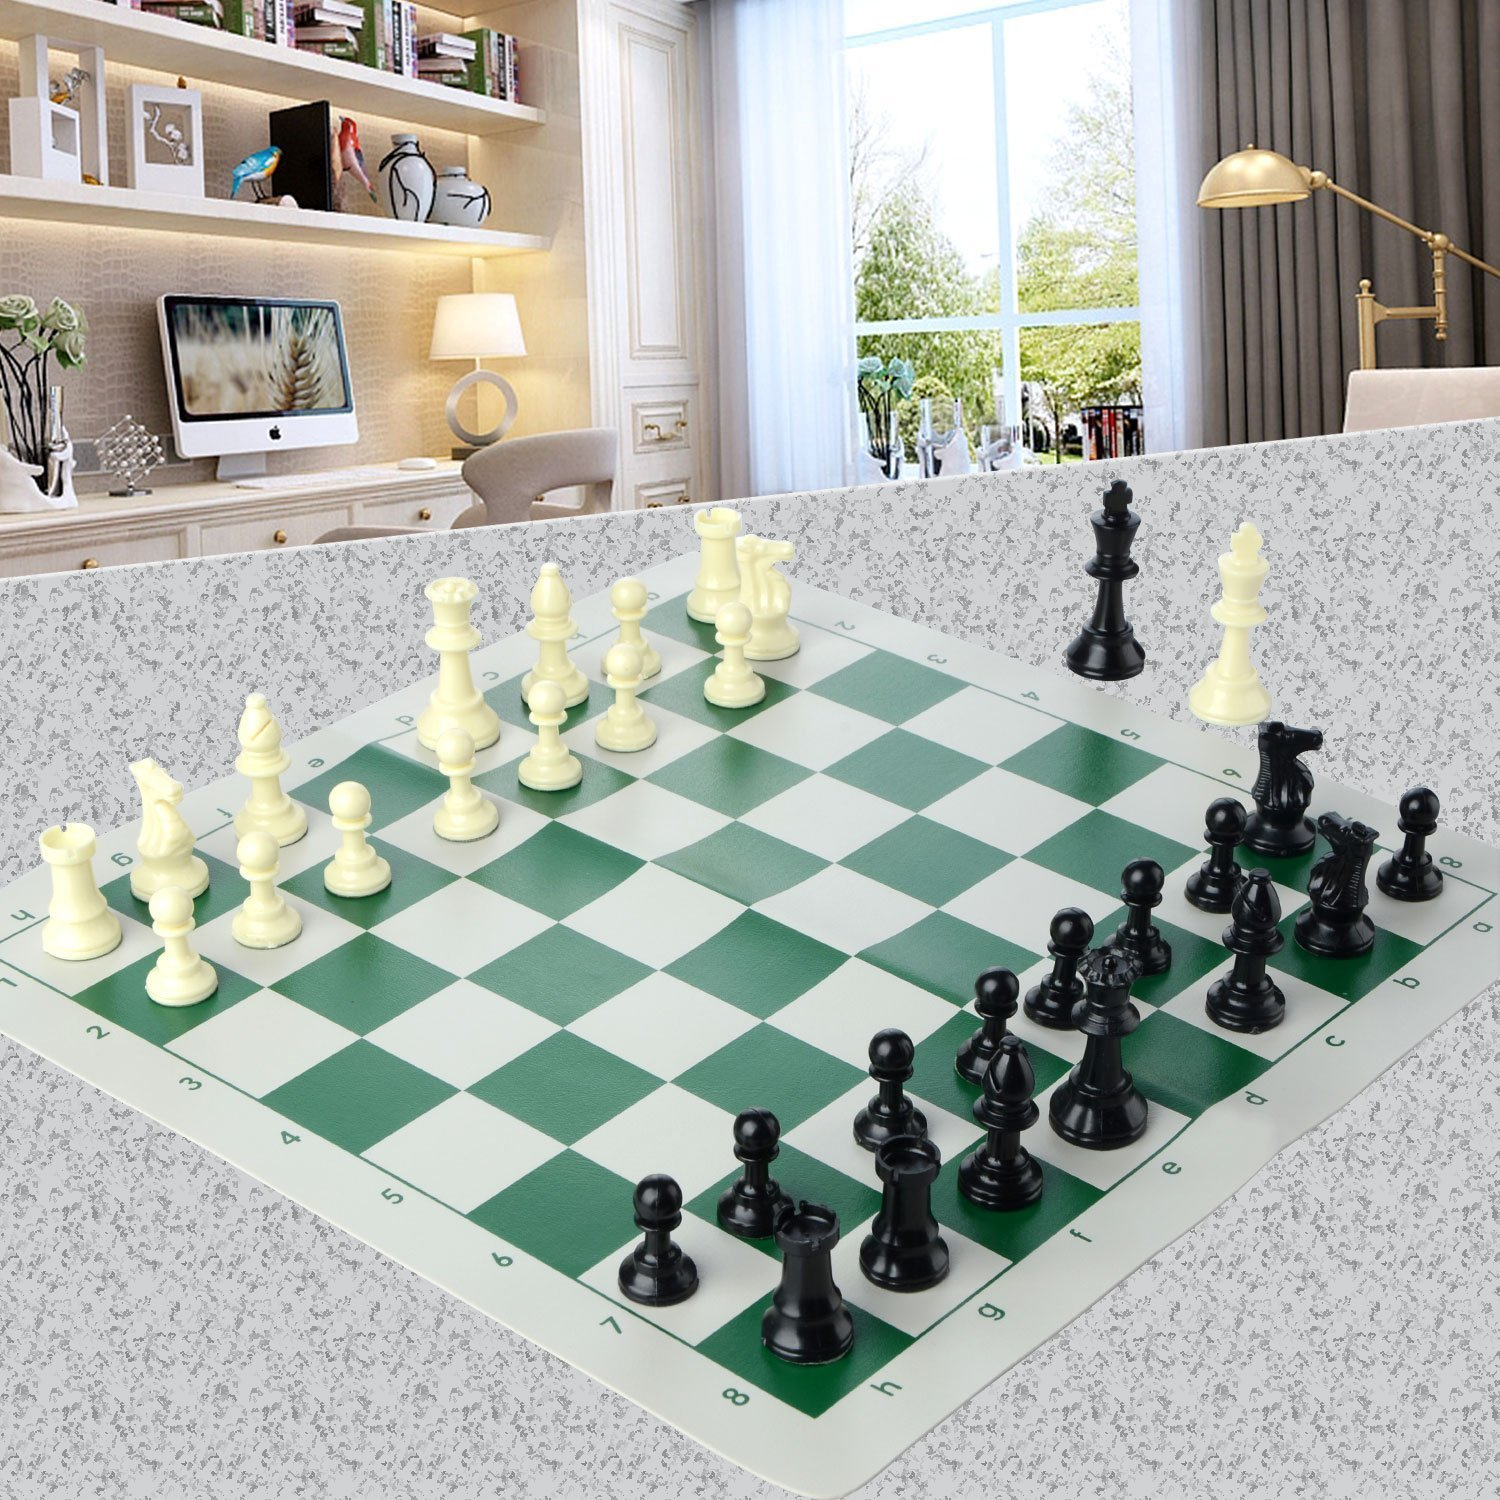 Chess Set,ASDOMO Chess Board Game With Natural Chess Pieces Plastic Weighted Full Complete Chess Set